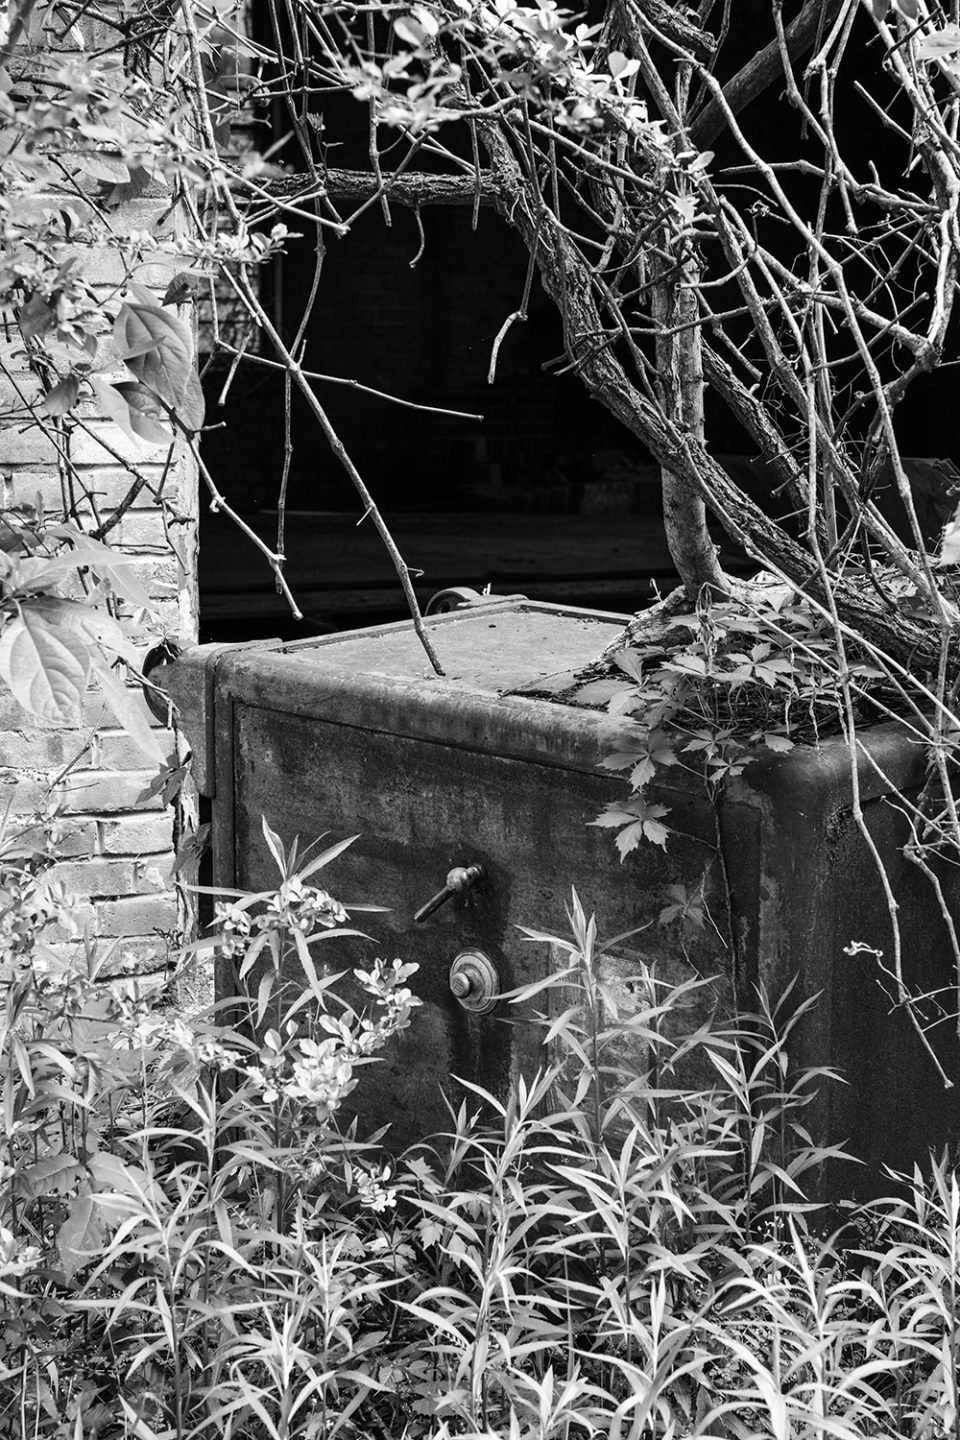 Black and white photograph of the antique Mosler safe found lying in the tall weeds next to the R.C. Tibbs & Sons building in Hushpuckena, Mississippi.